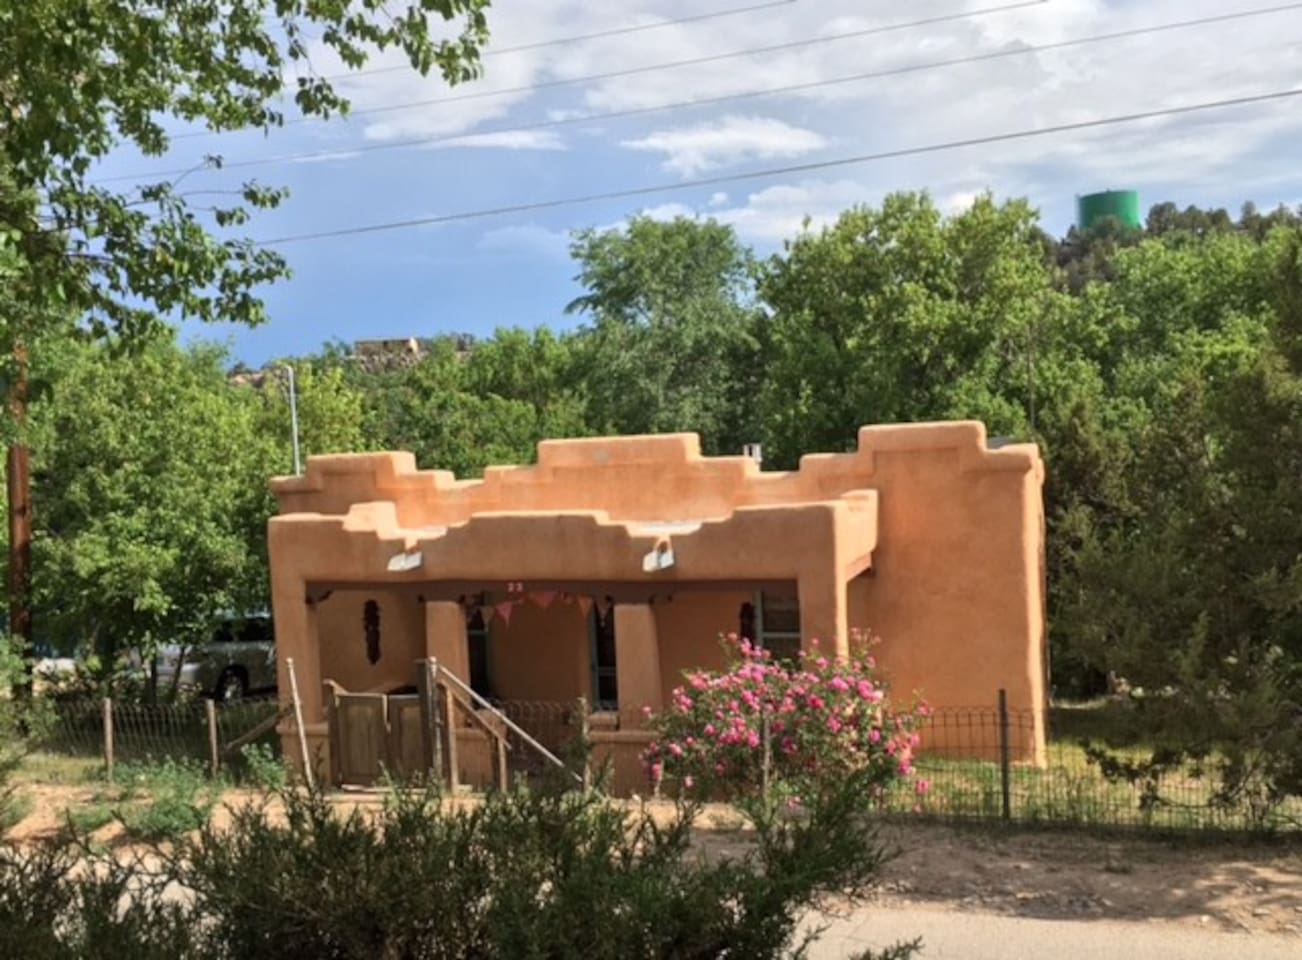 Casa Dulce has an adorable roof line befitting the 1936 custom adobe design.